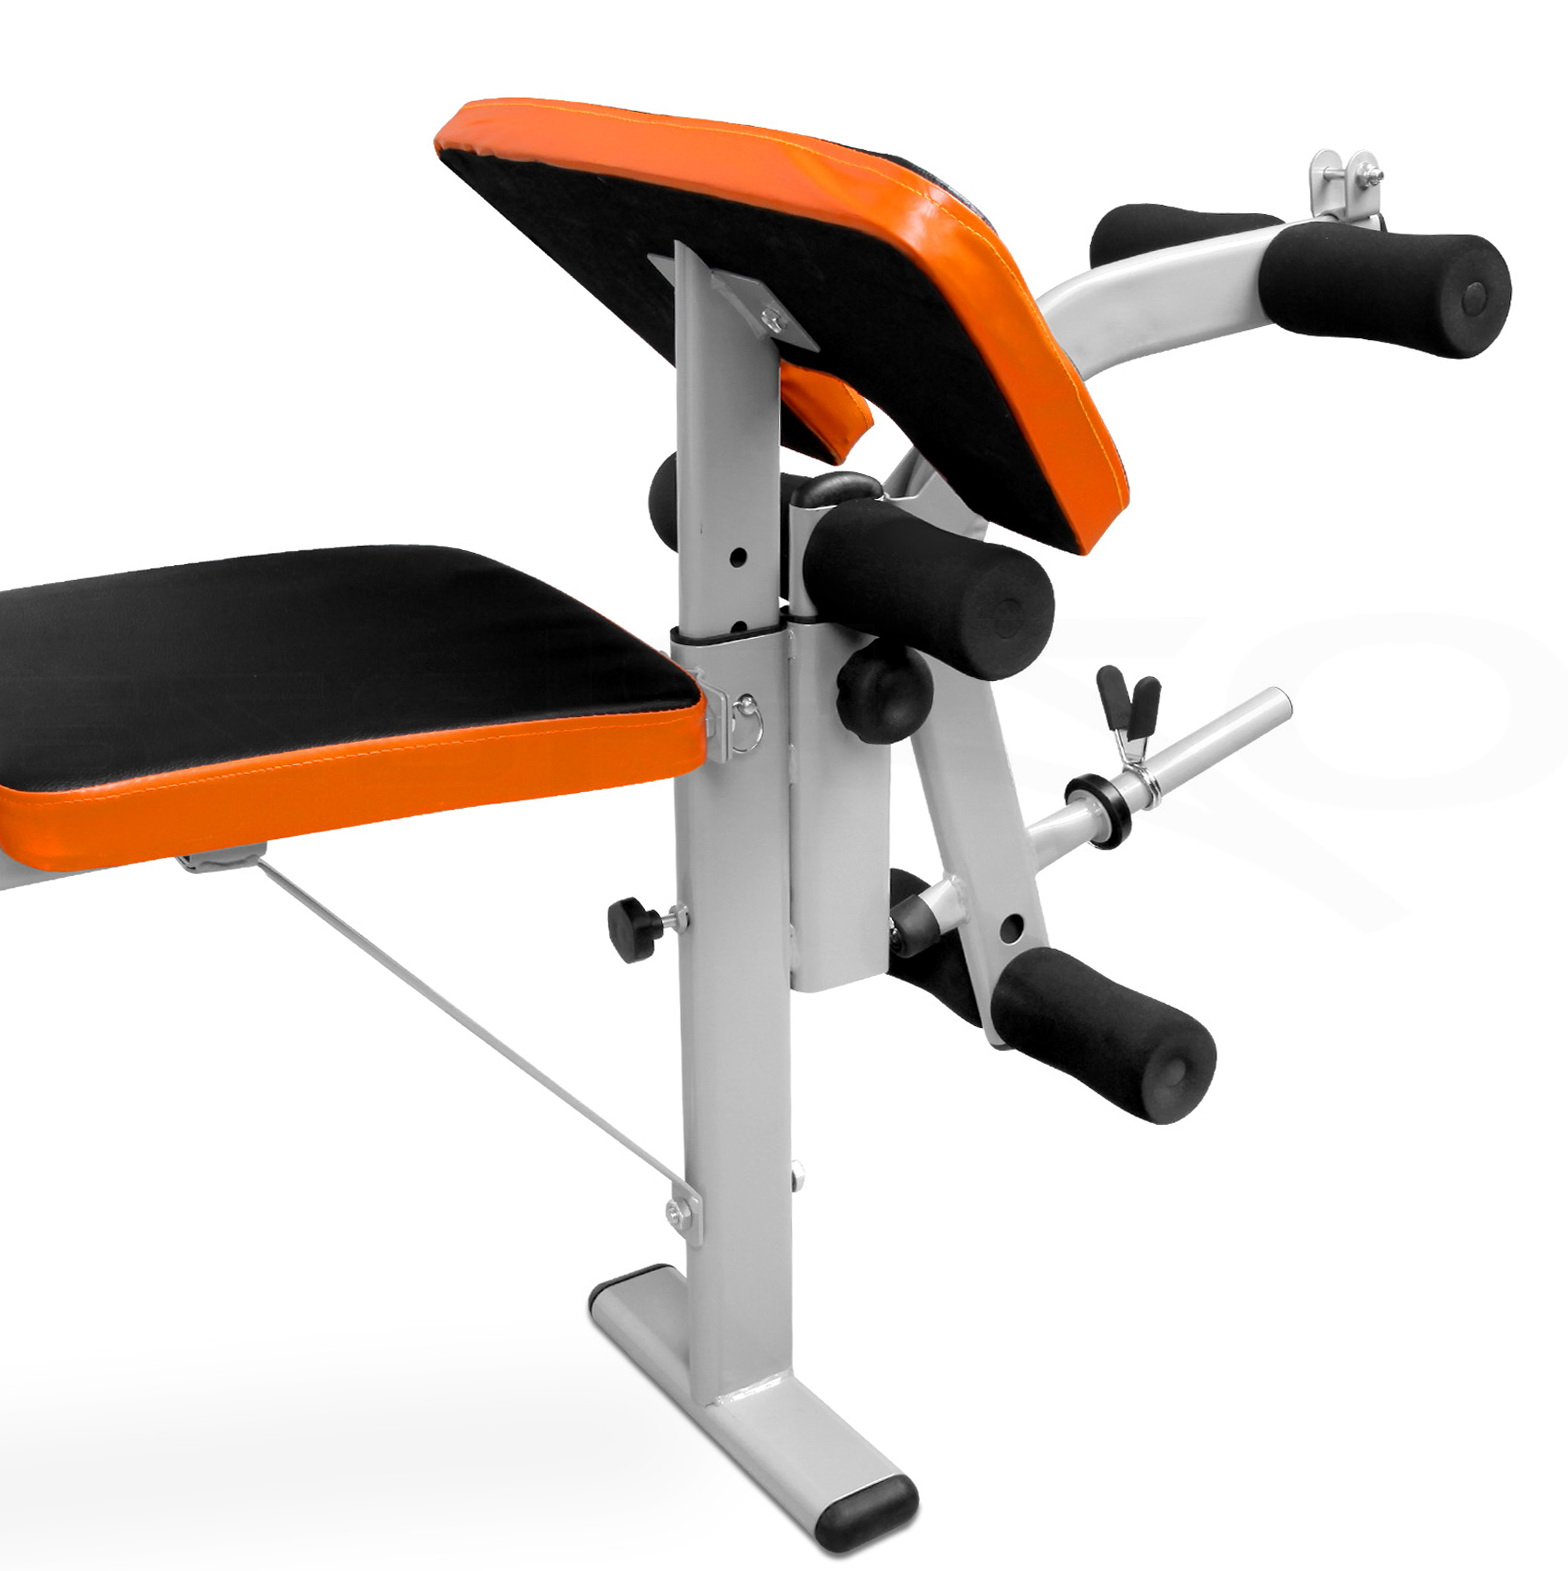 Weight Bench And Squat Rack Home Design Ideas